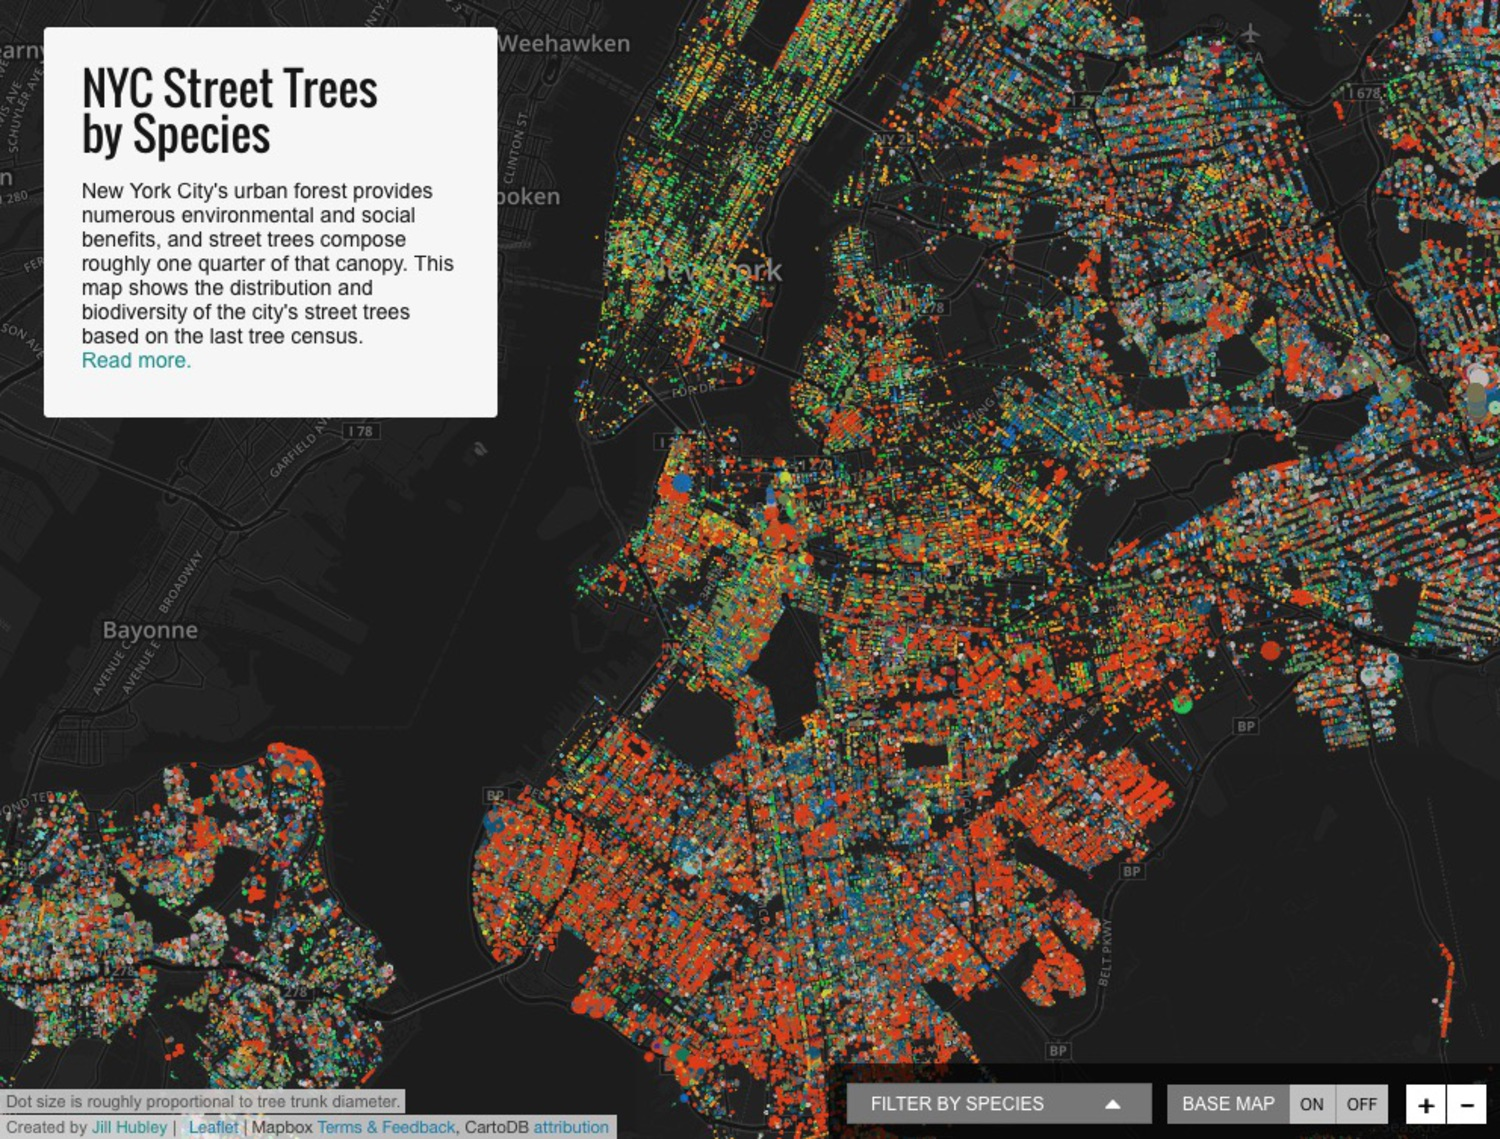 NYC Street Trees by Species